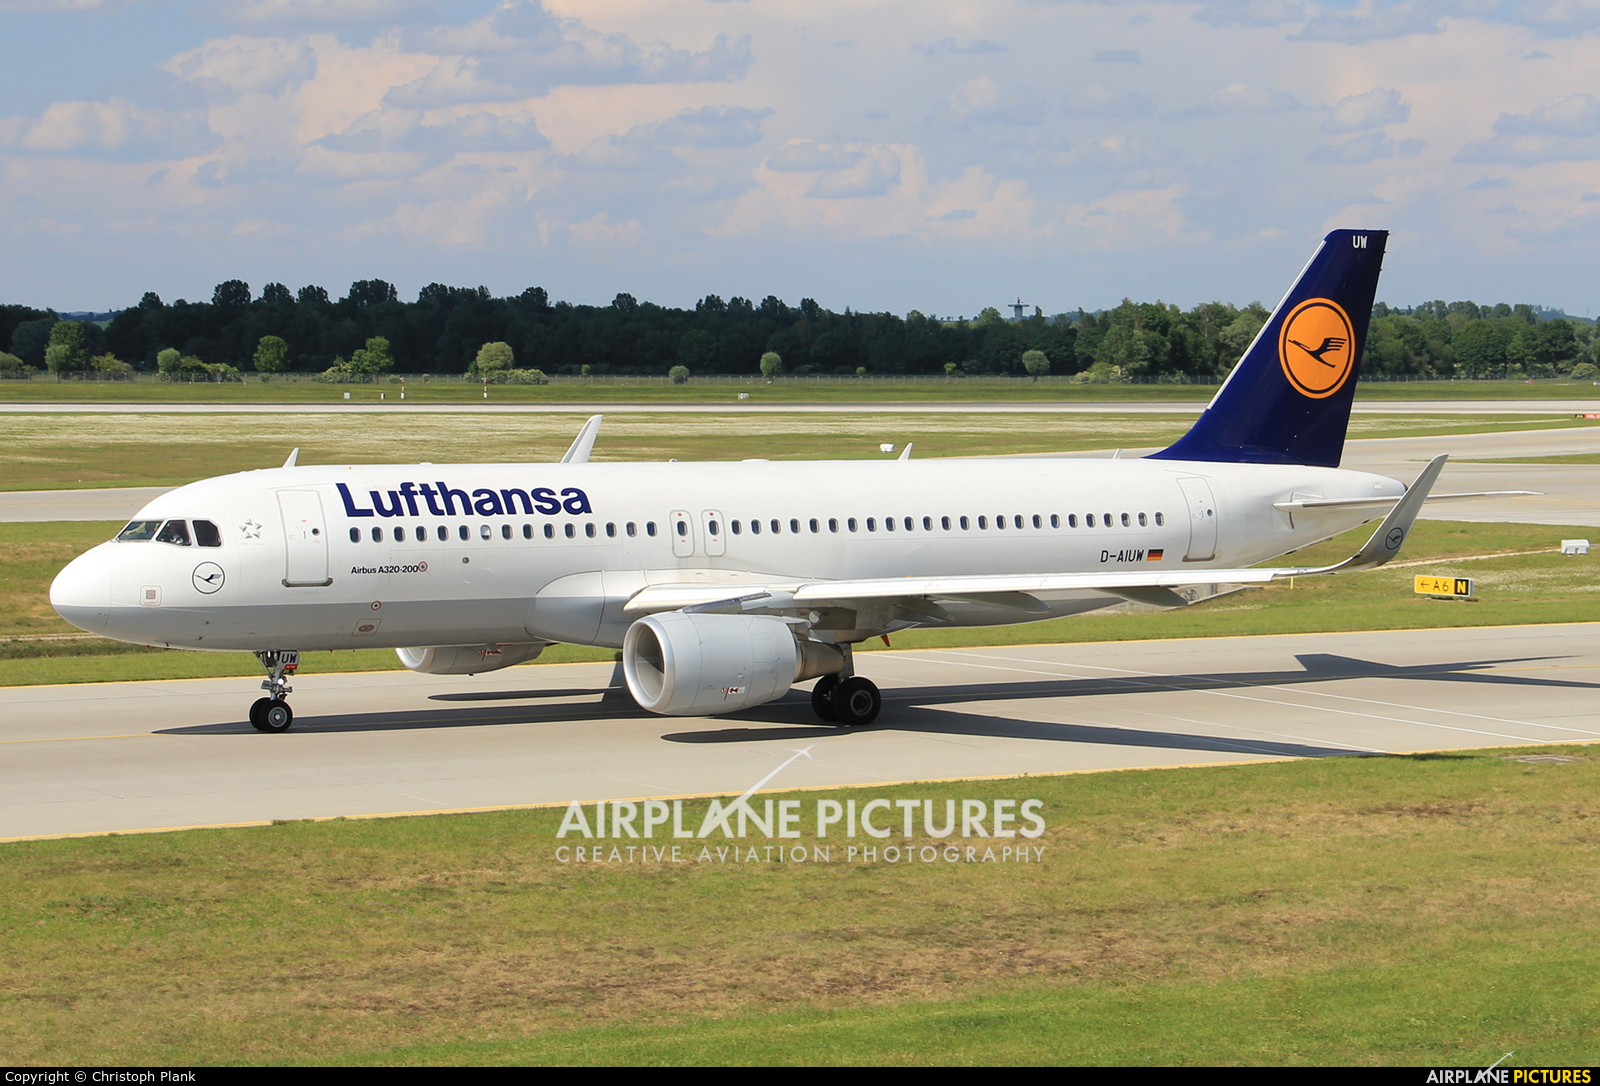 Lufthansa D-AIUW aircraft at Munich